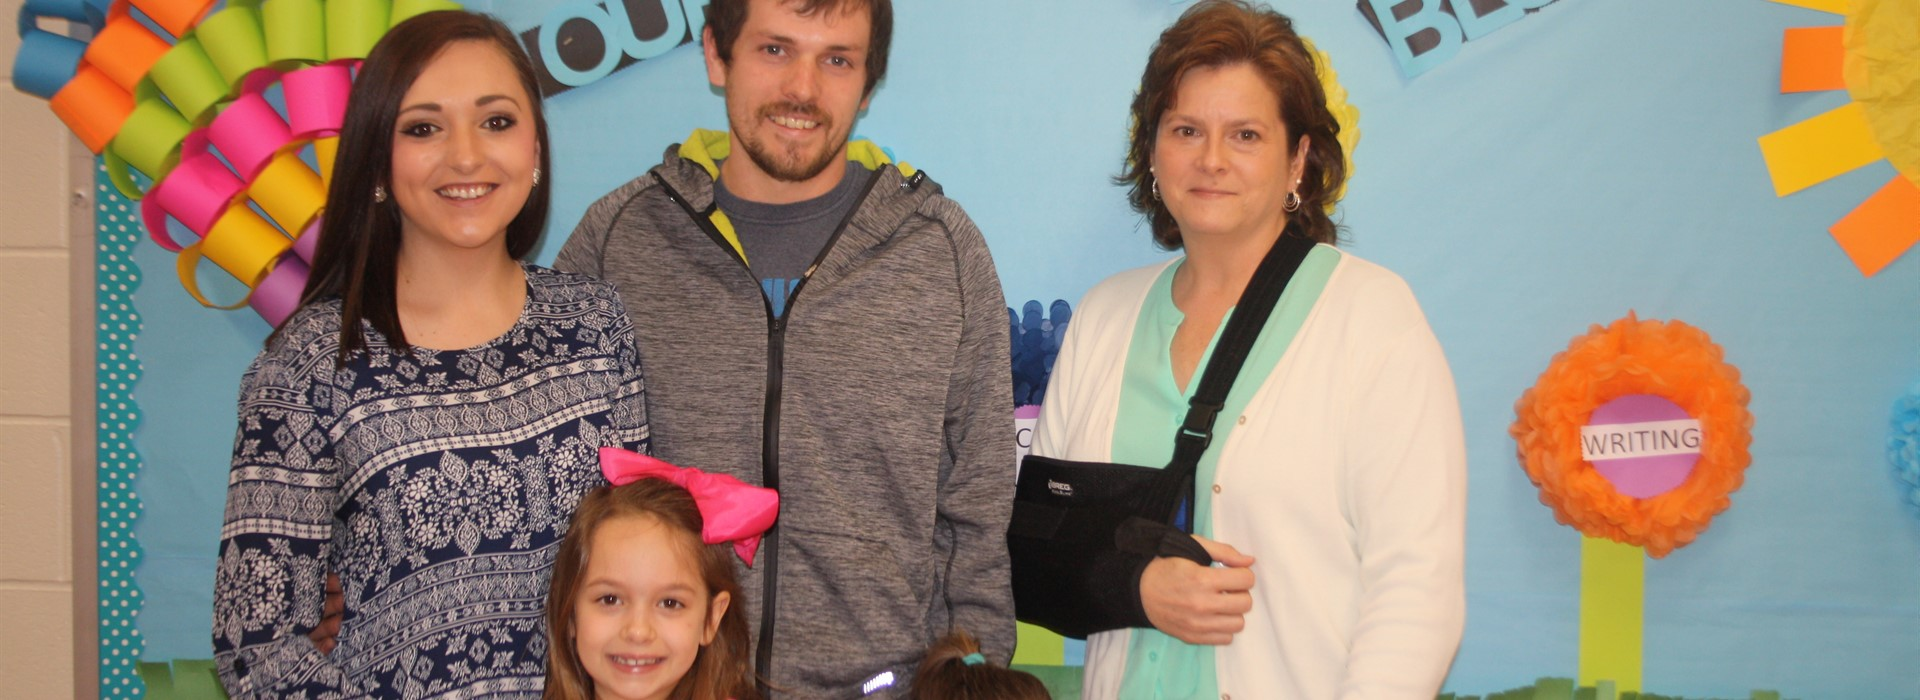 Kennedy Britton and Family with Ms. Ashworth after winning the Kindergarten Handwriting Award.